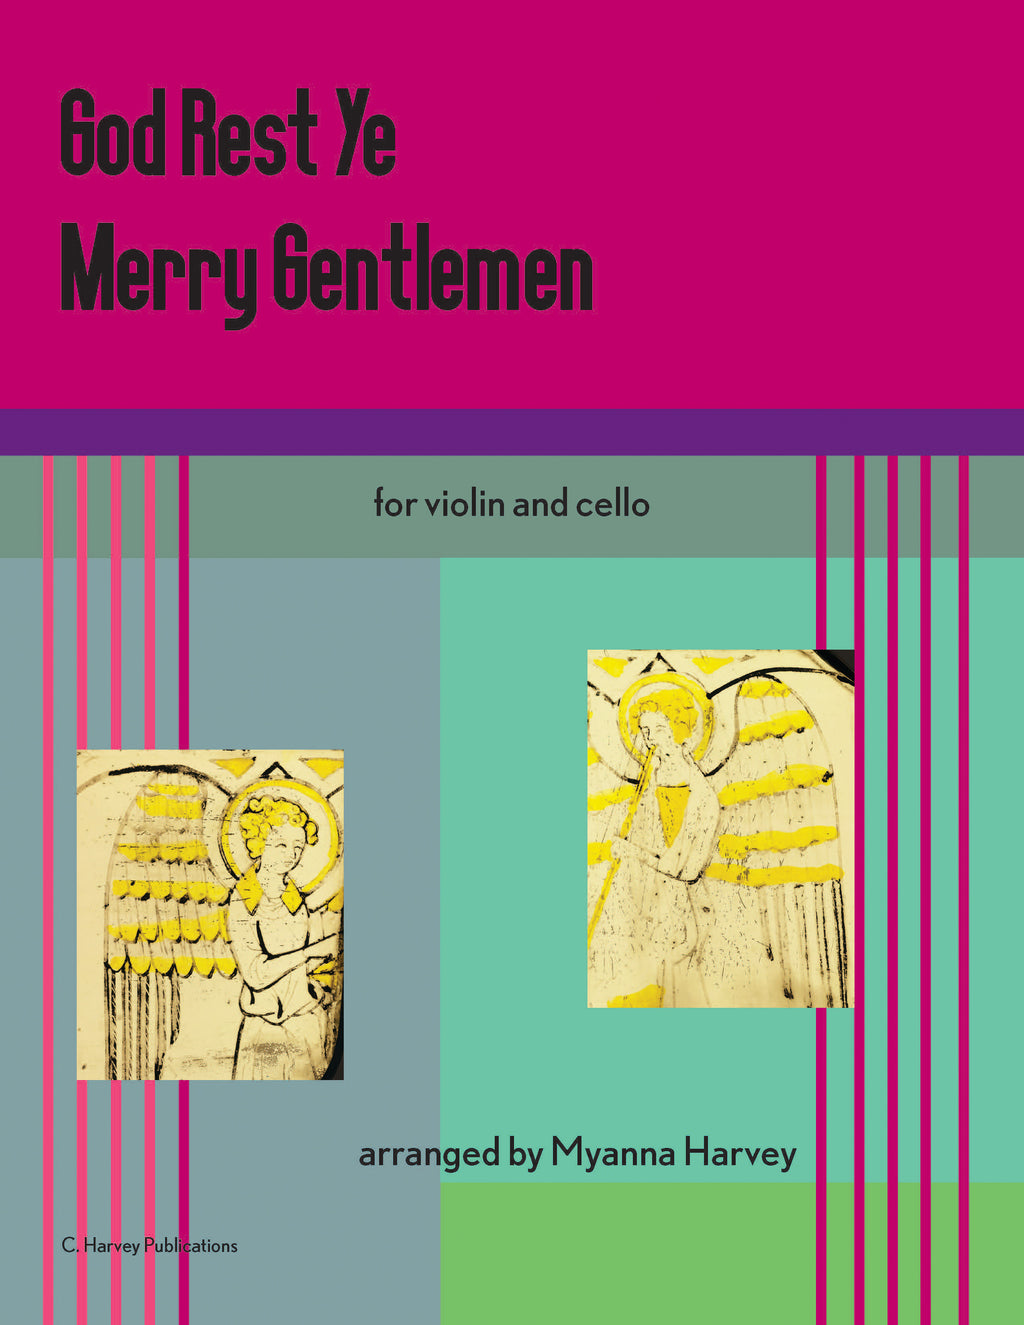 God Rest Ye Merry Gentlemen for String Duo - PDF download